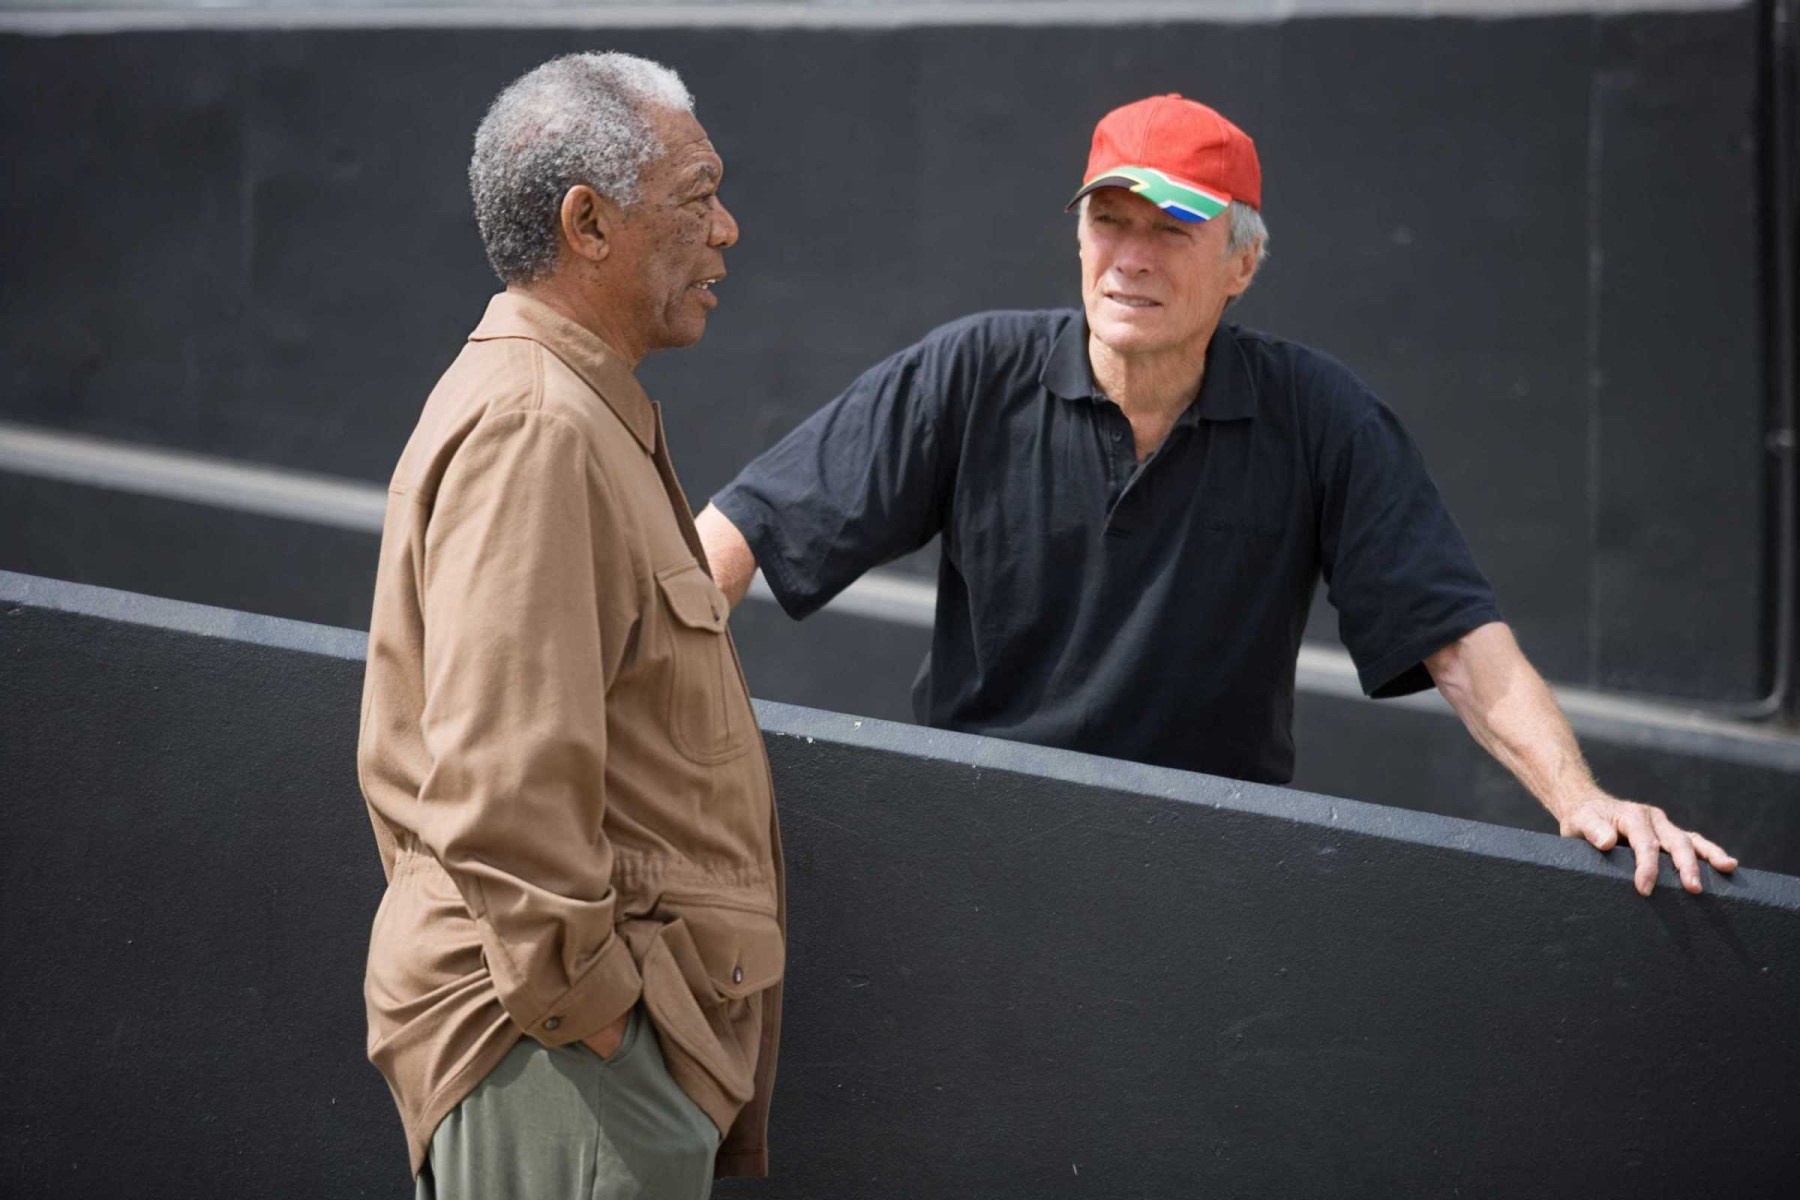 Clint Eastwood Is Talking with Nelson Mandela ??? Behind the Scenes